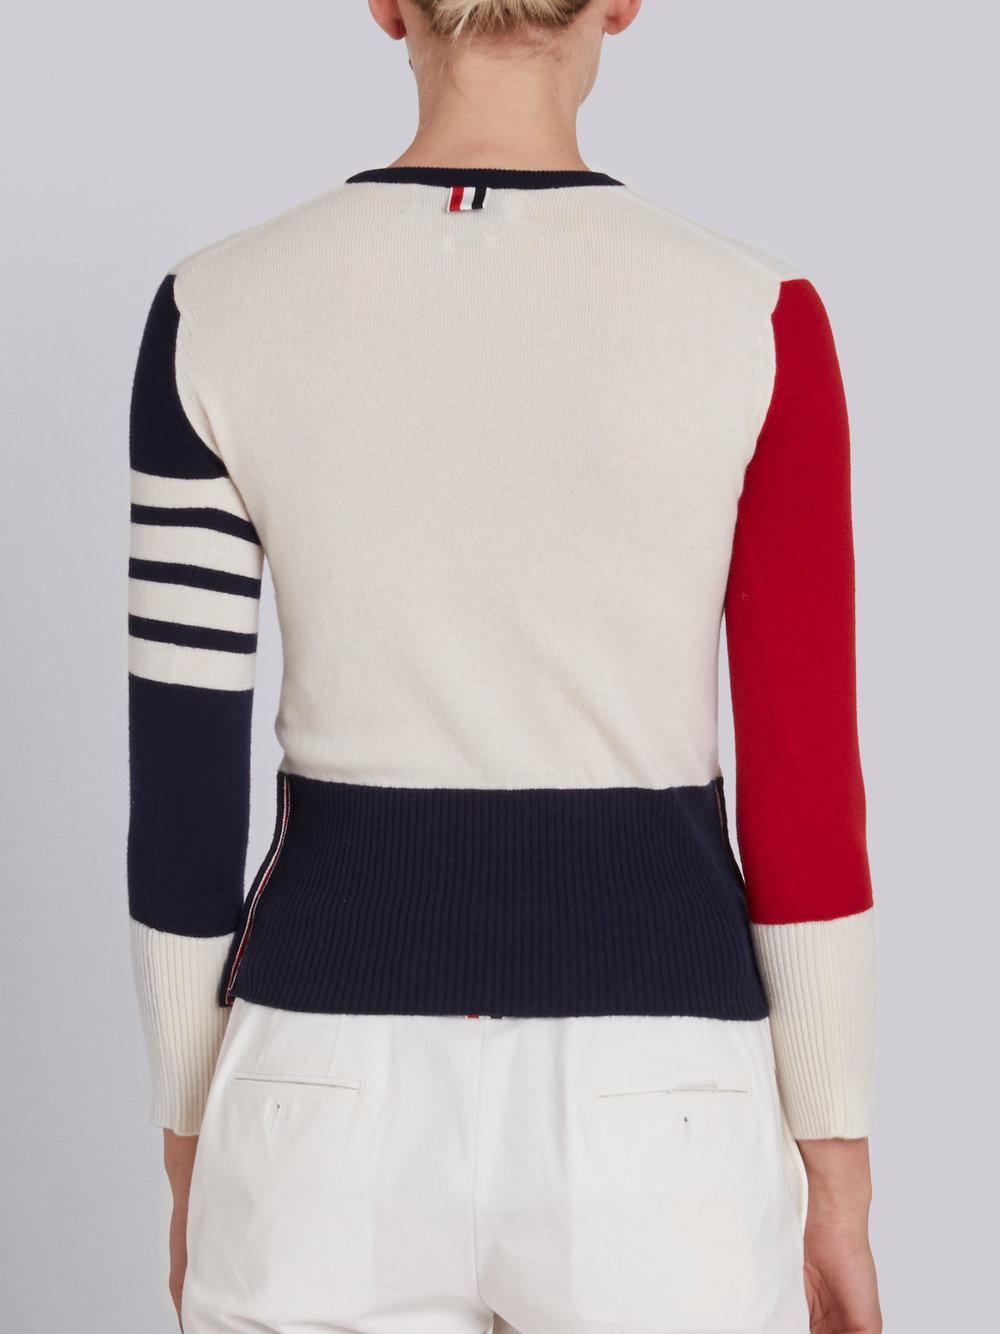 Classic Crewneck Pullover In Funmix Cashmere With 4-Bar Sleeve Stripe - Unavailable Thom Browne 2018 Online Order Online lIkk5s